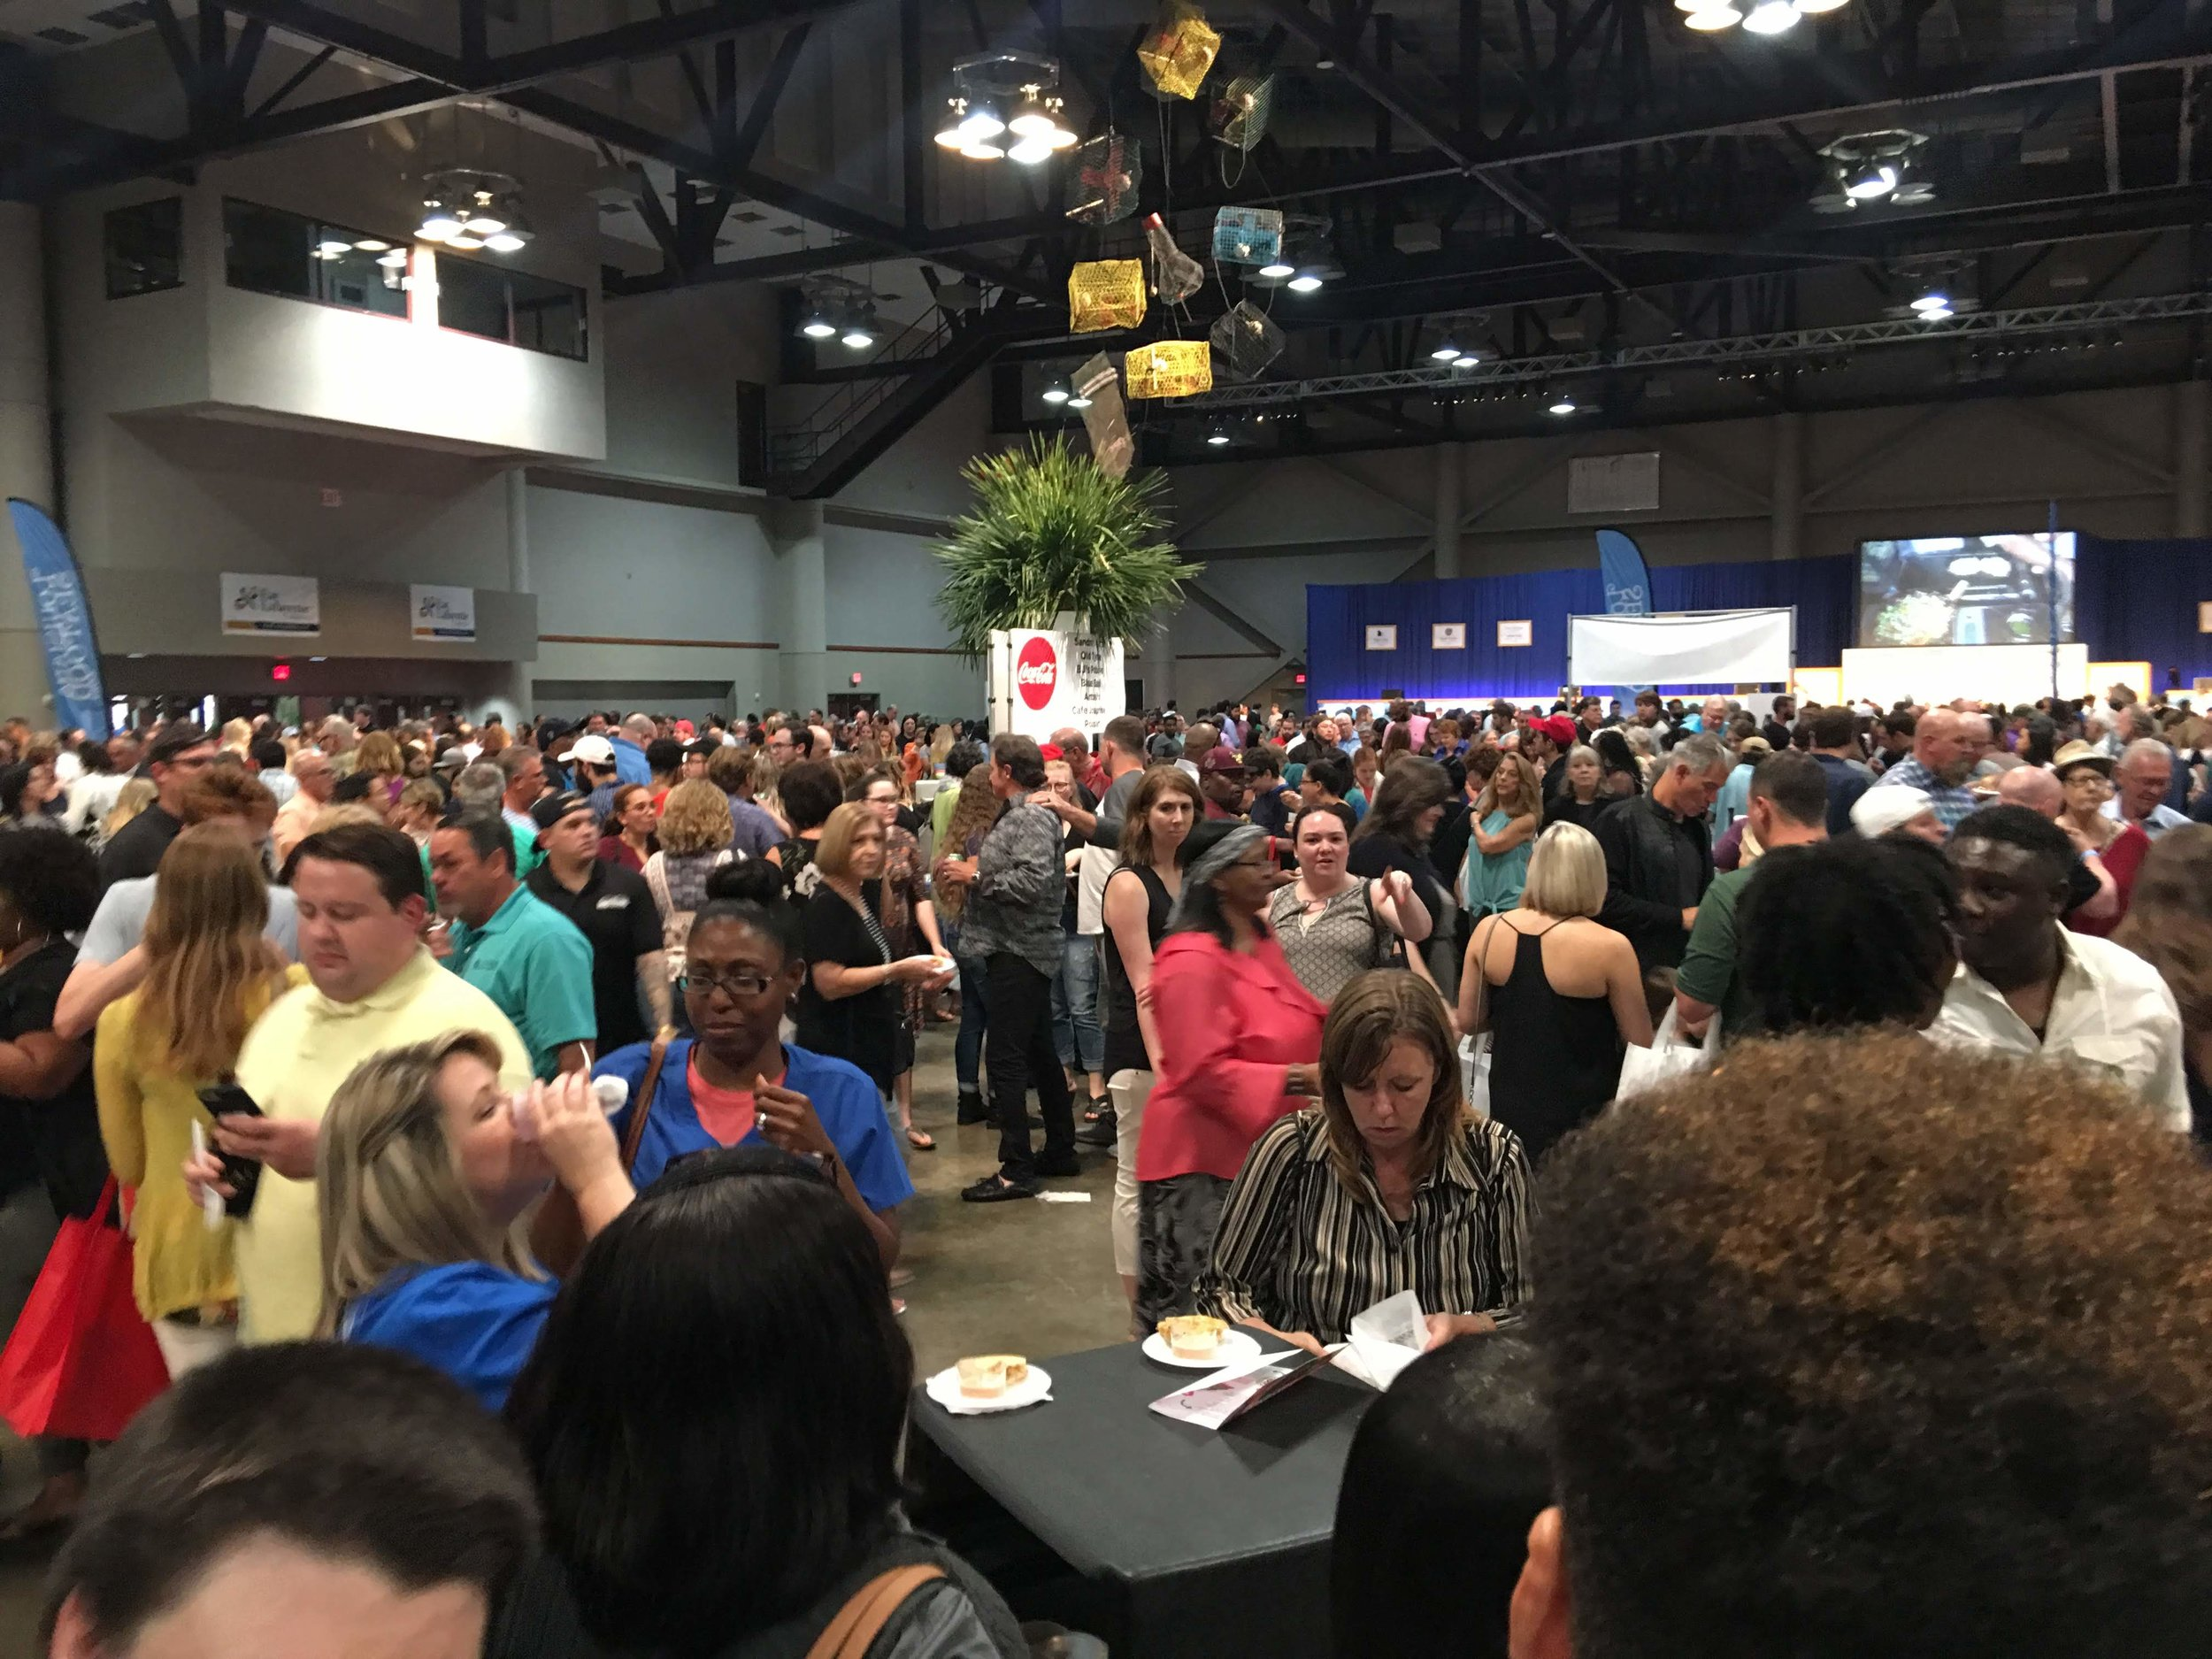 Large Crowd to celebrate locally-owned restaurants